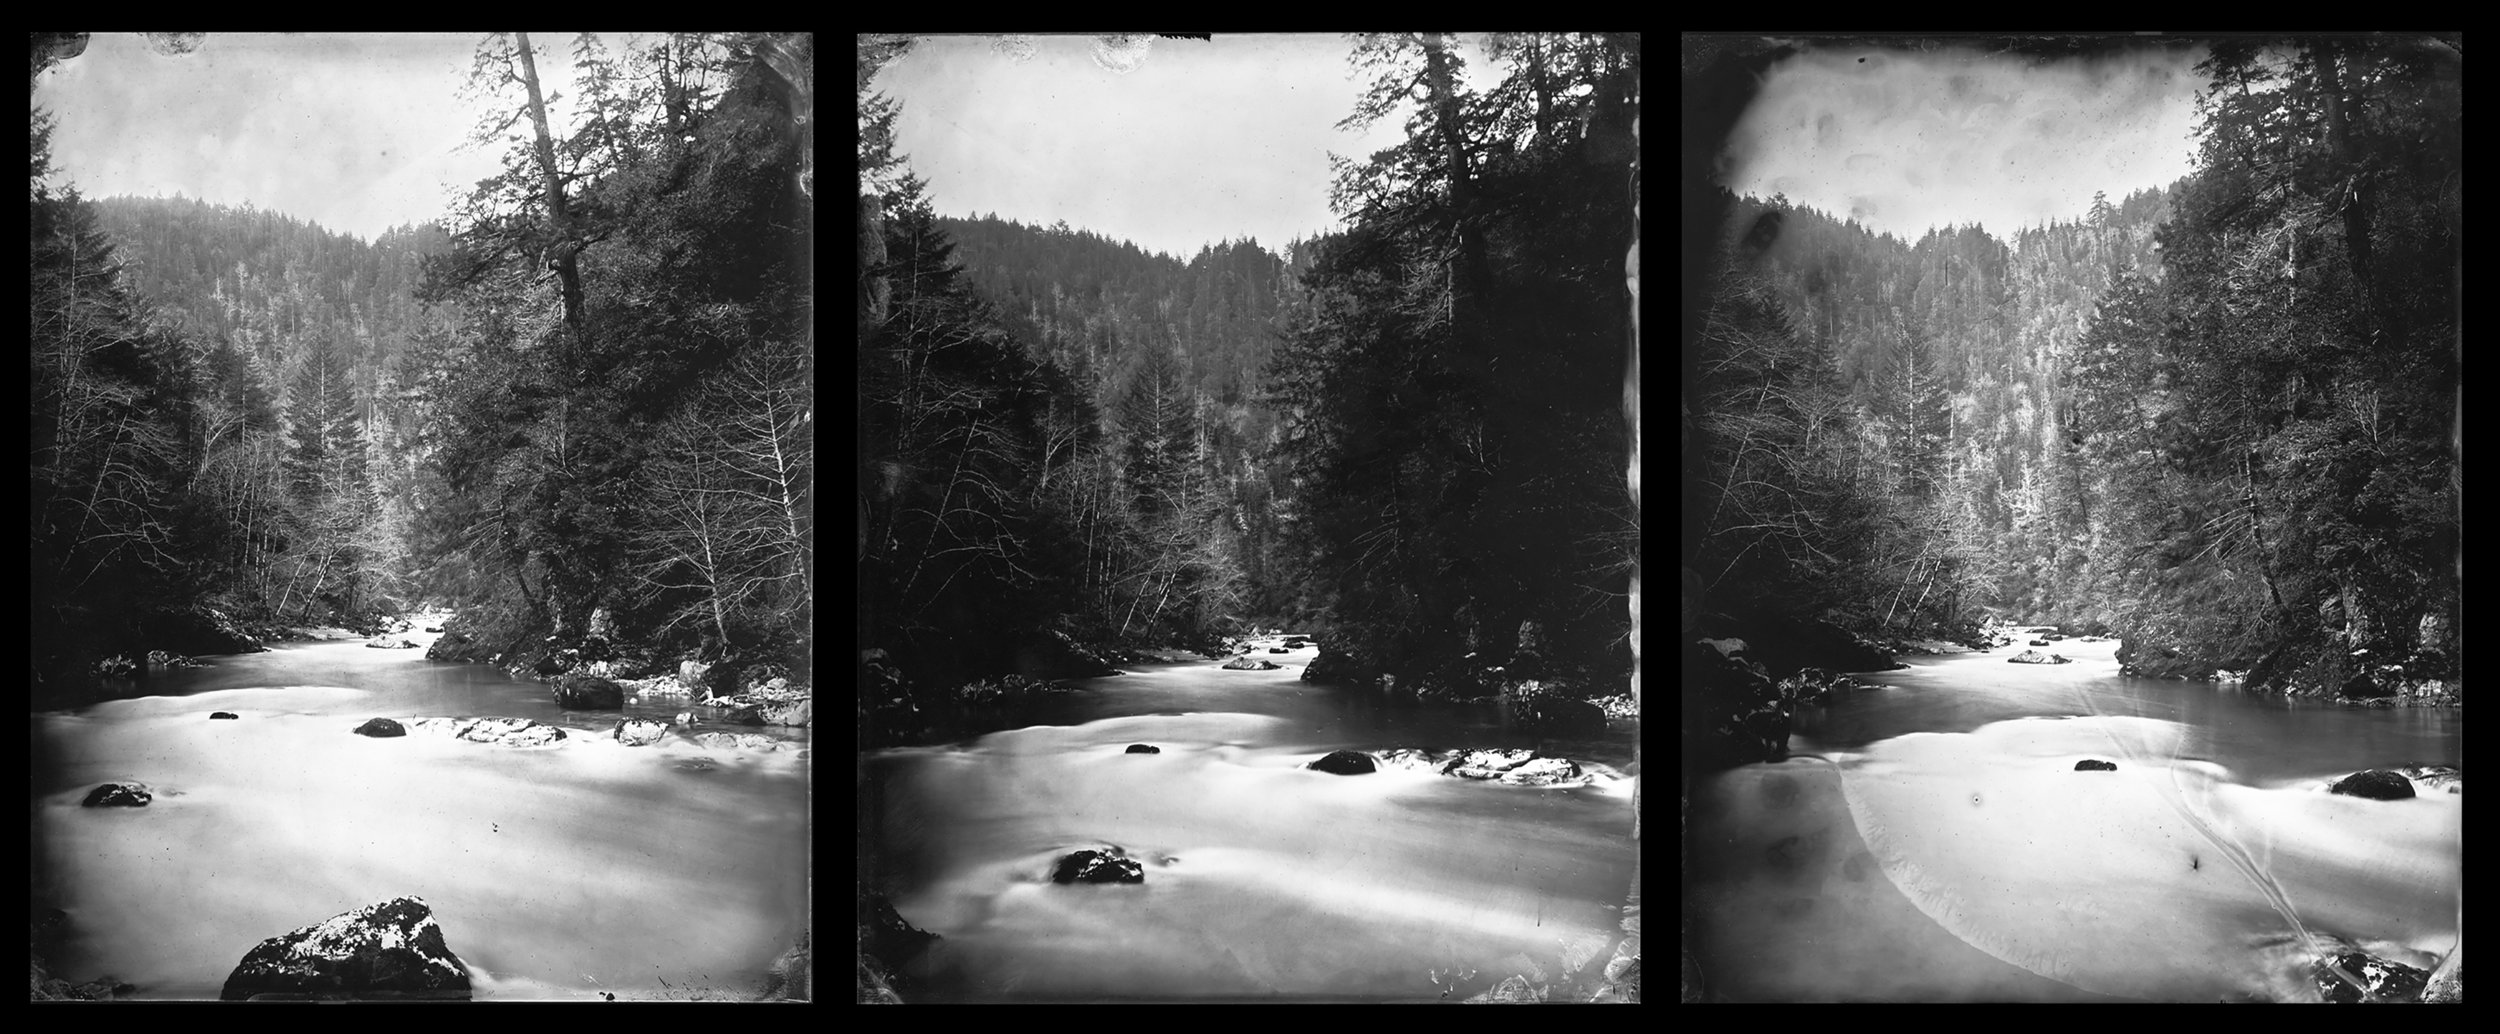 """Cole Caswell ,  Deserted American Dreaming, Ascending the Elk River  (3 8""""x10""""tintypes), Oregon, 2017"""